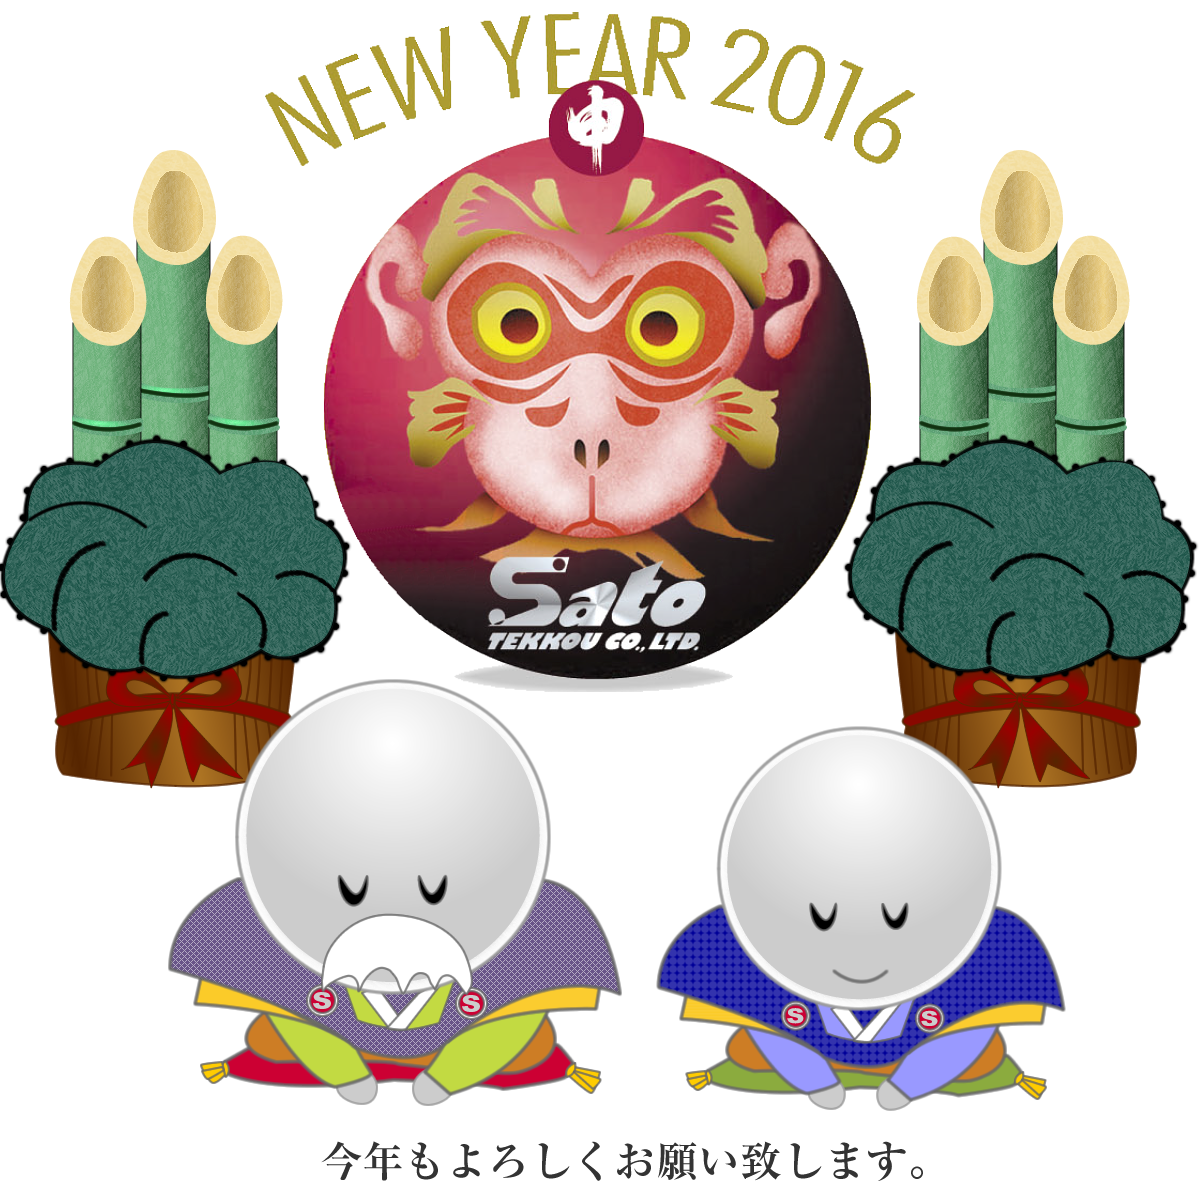 2016-new_year_card.png